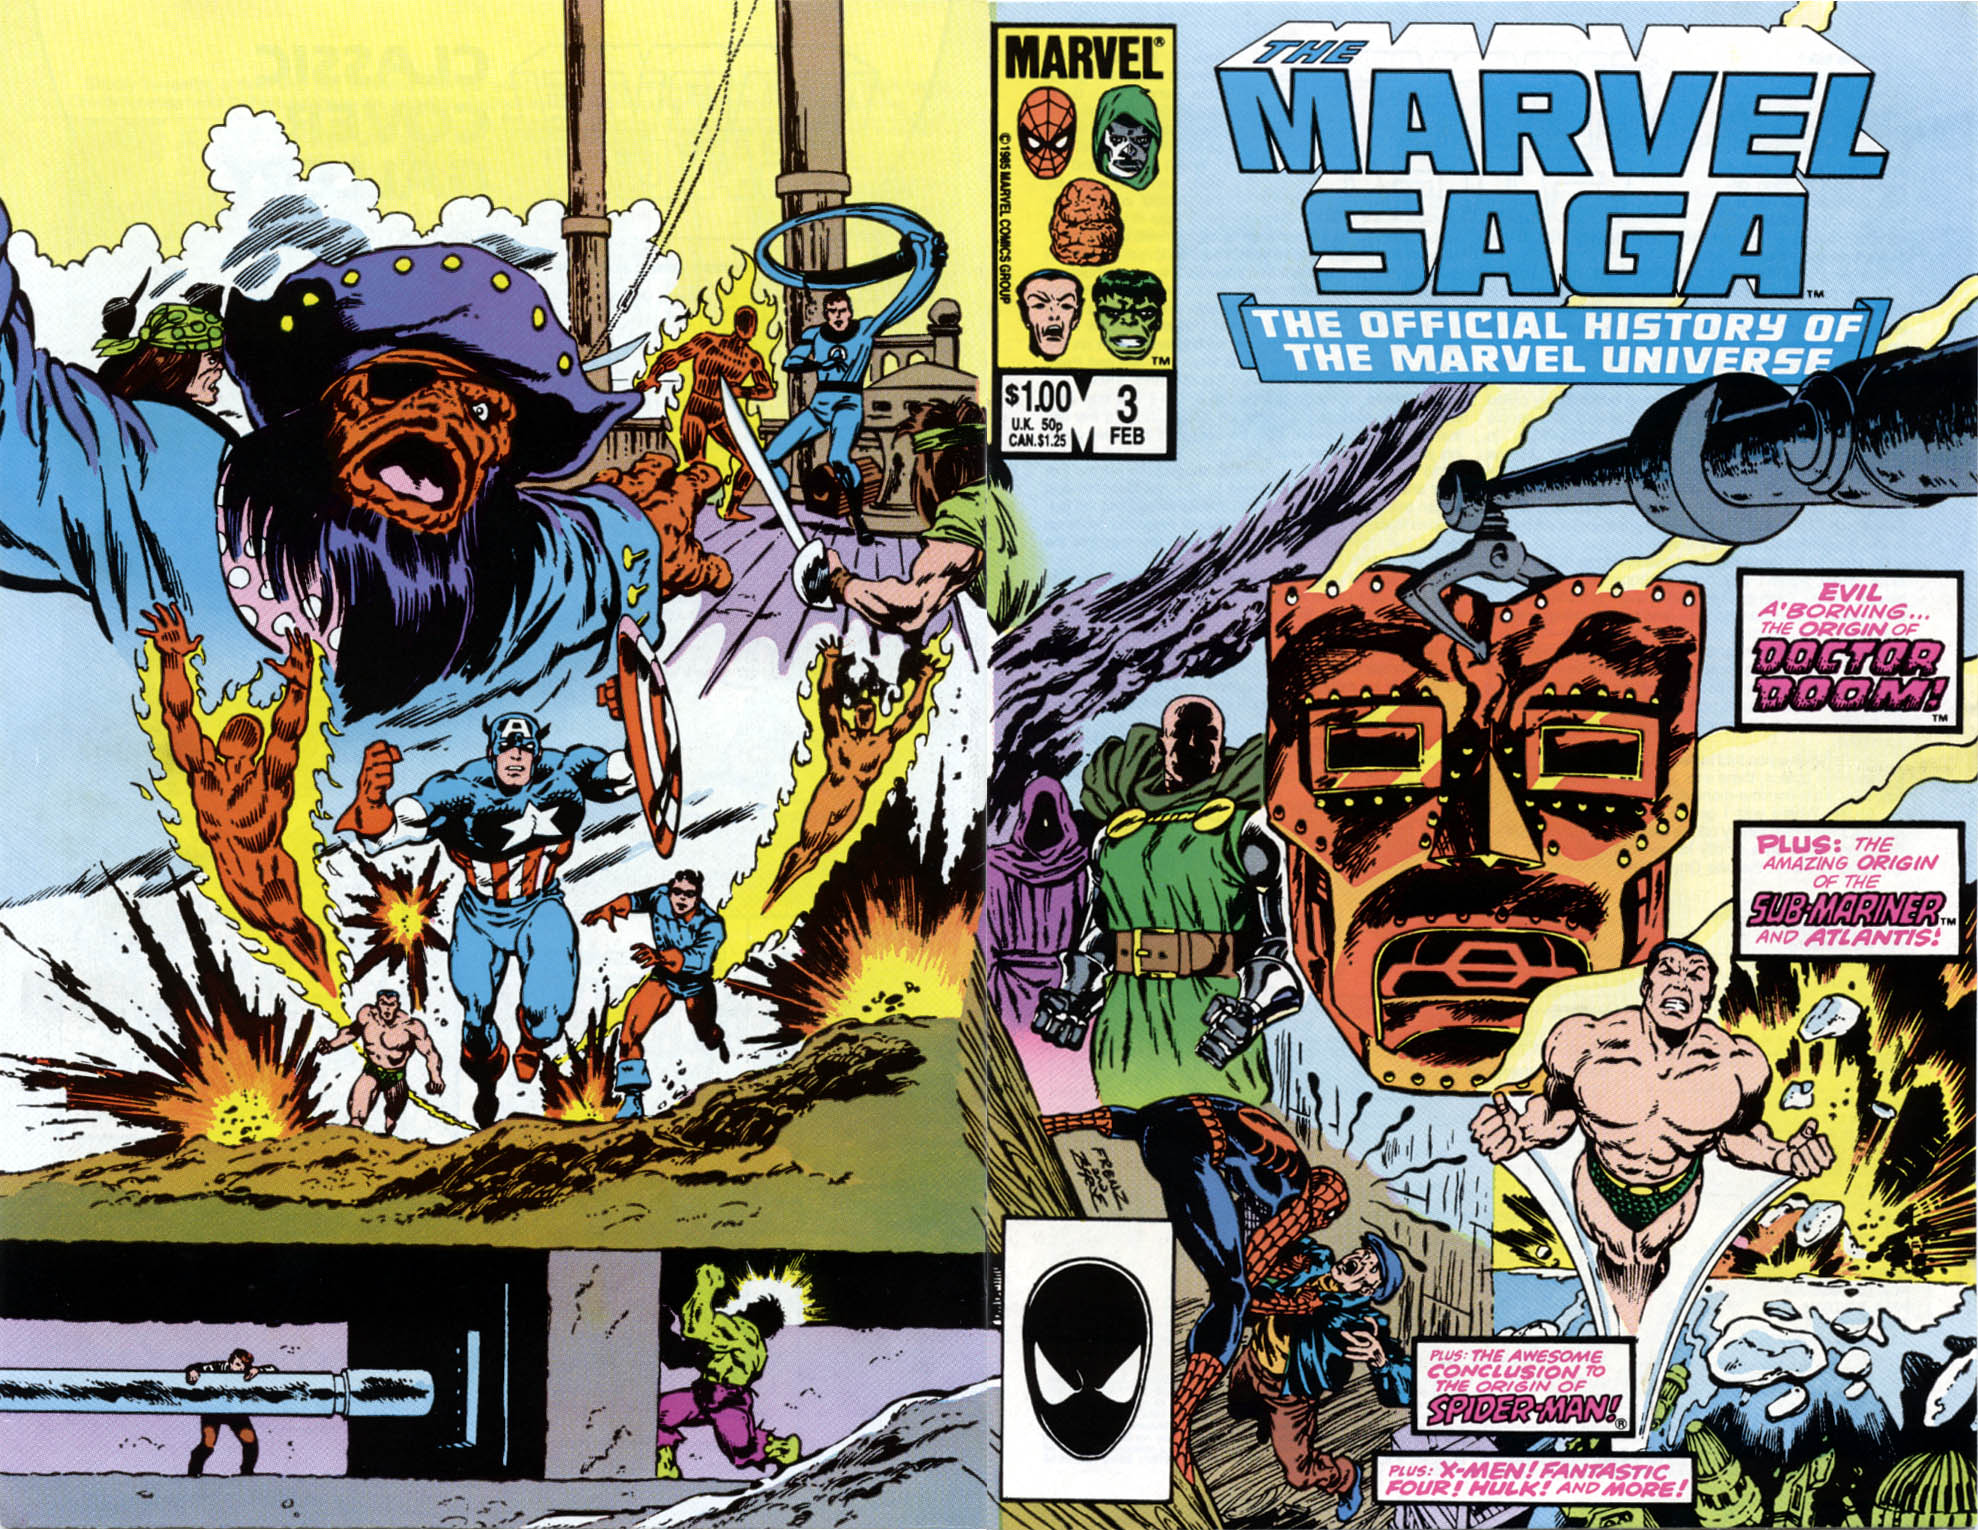 Marvel Saga: The Official History of the Marvel Universe 3 Page 1